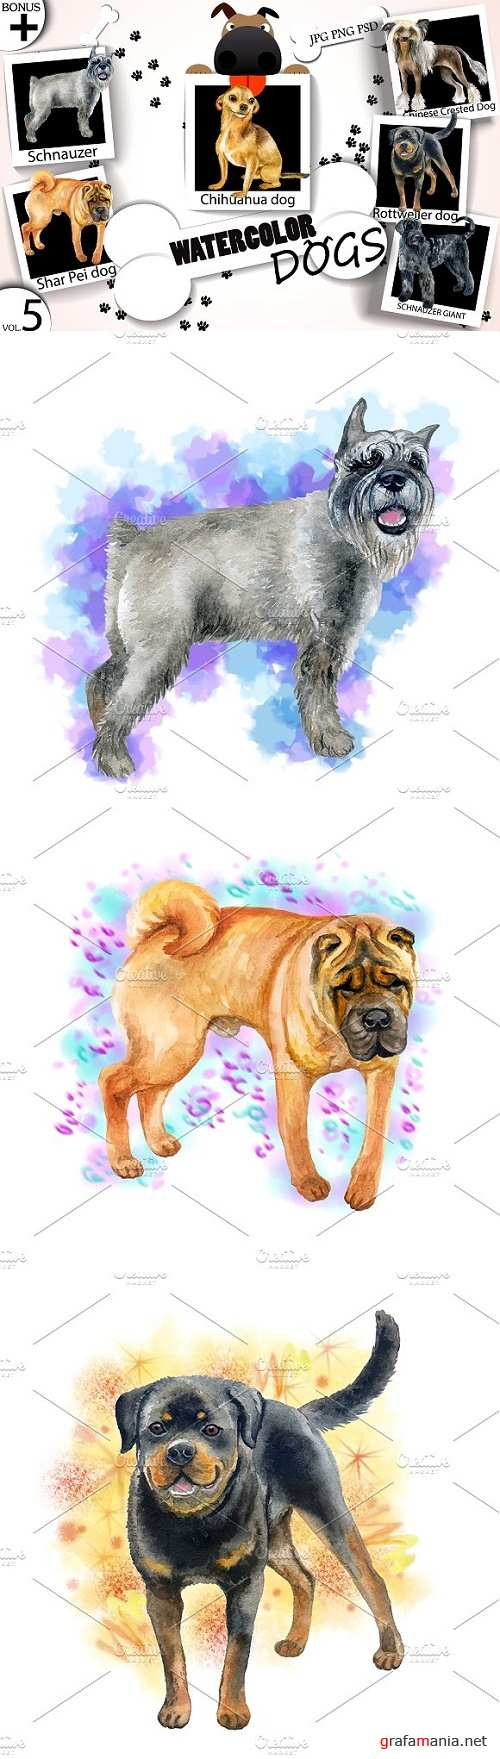 Watercolor Dogs - Collection 5 of 12 - 1717321